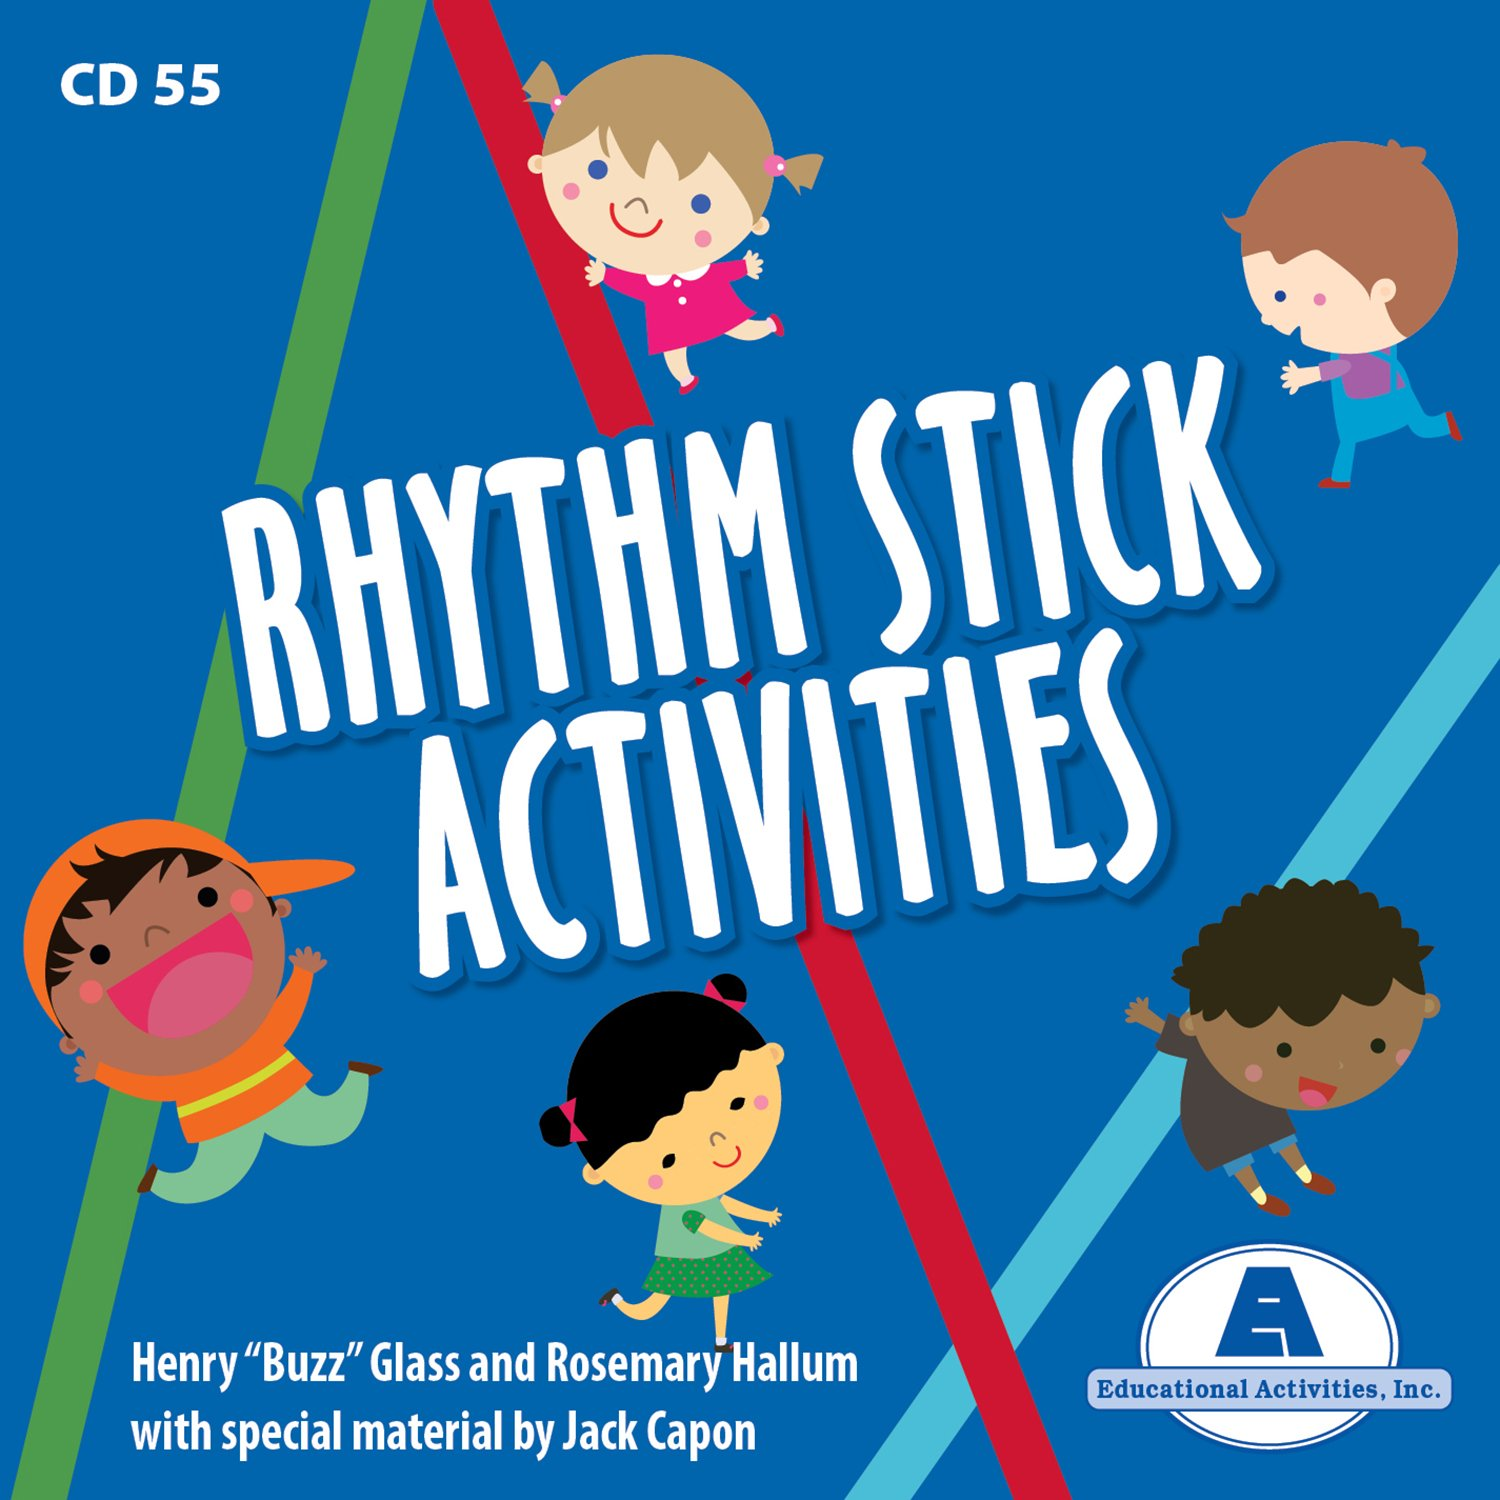 Rhythm Stick Activities by Educational Activities